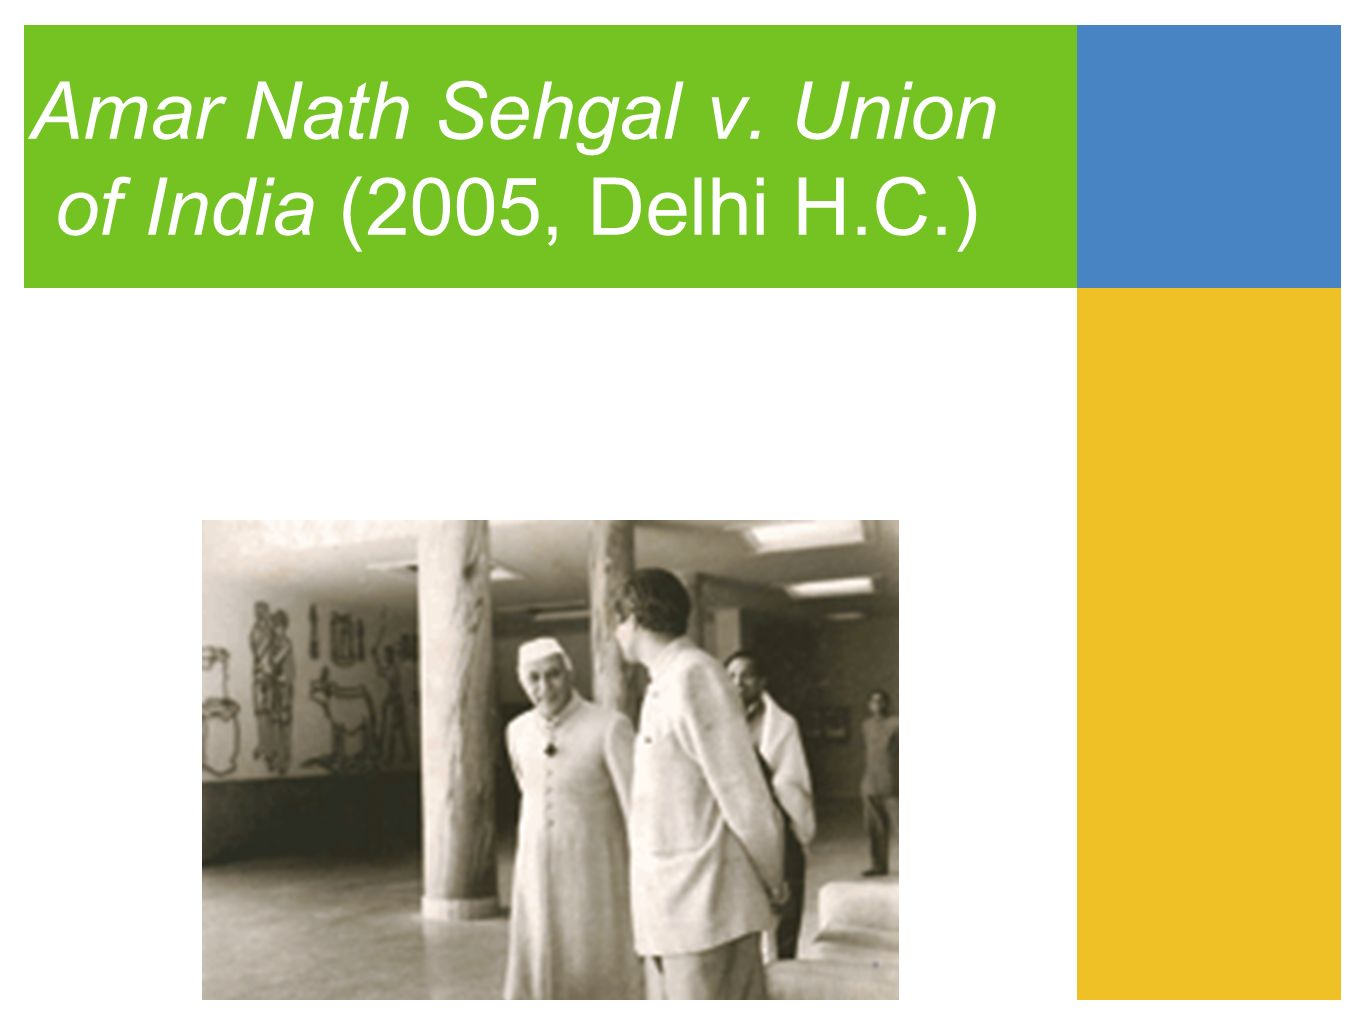 Amar Nath Sehgal v. Union of India (2005, Delhi H.C.)